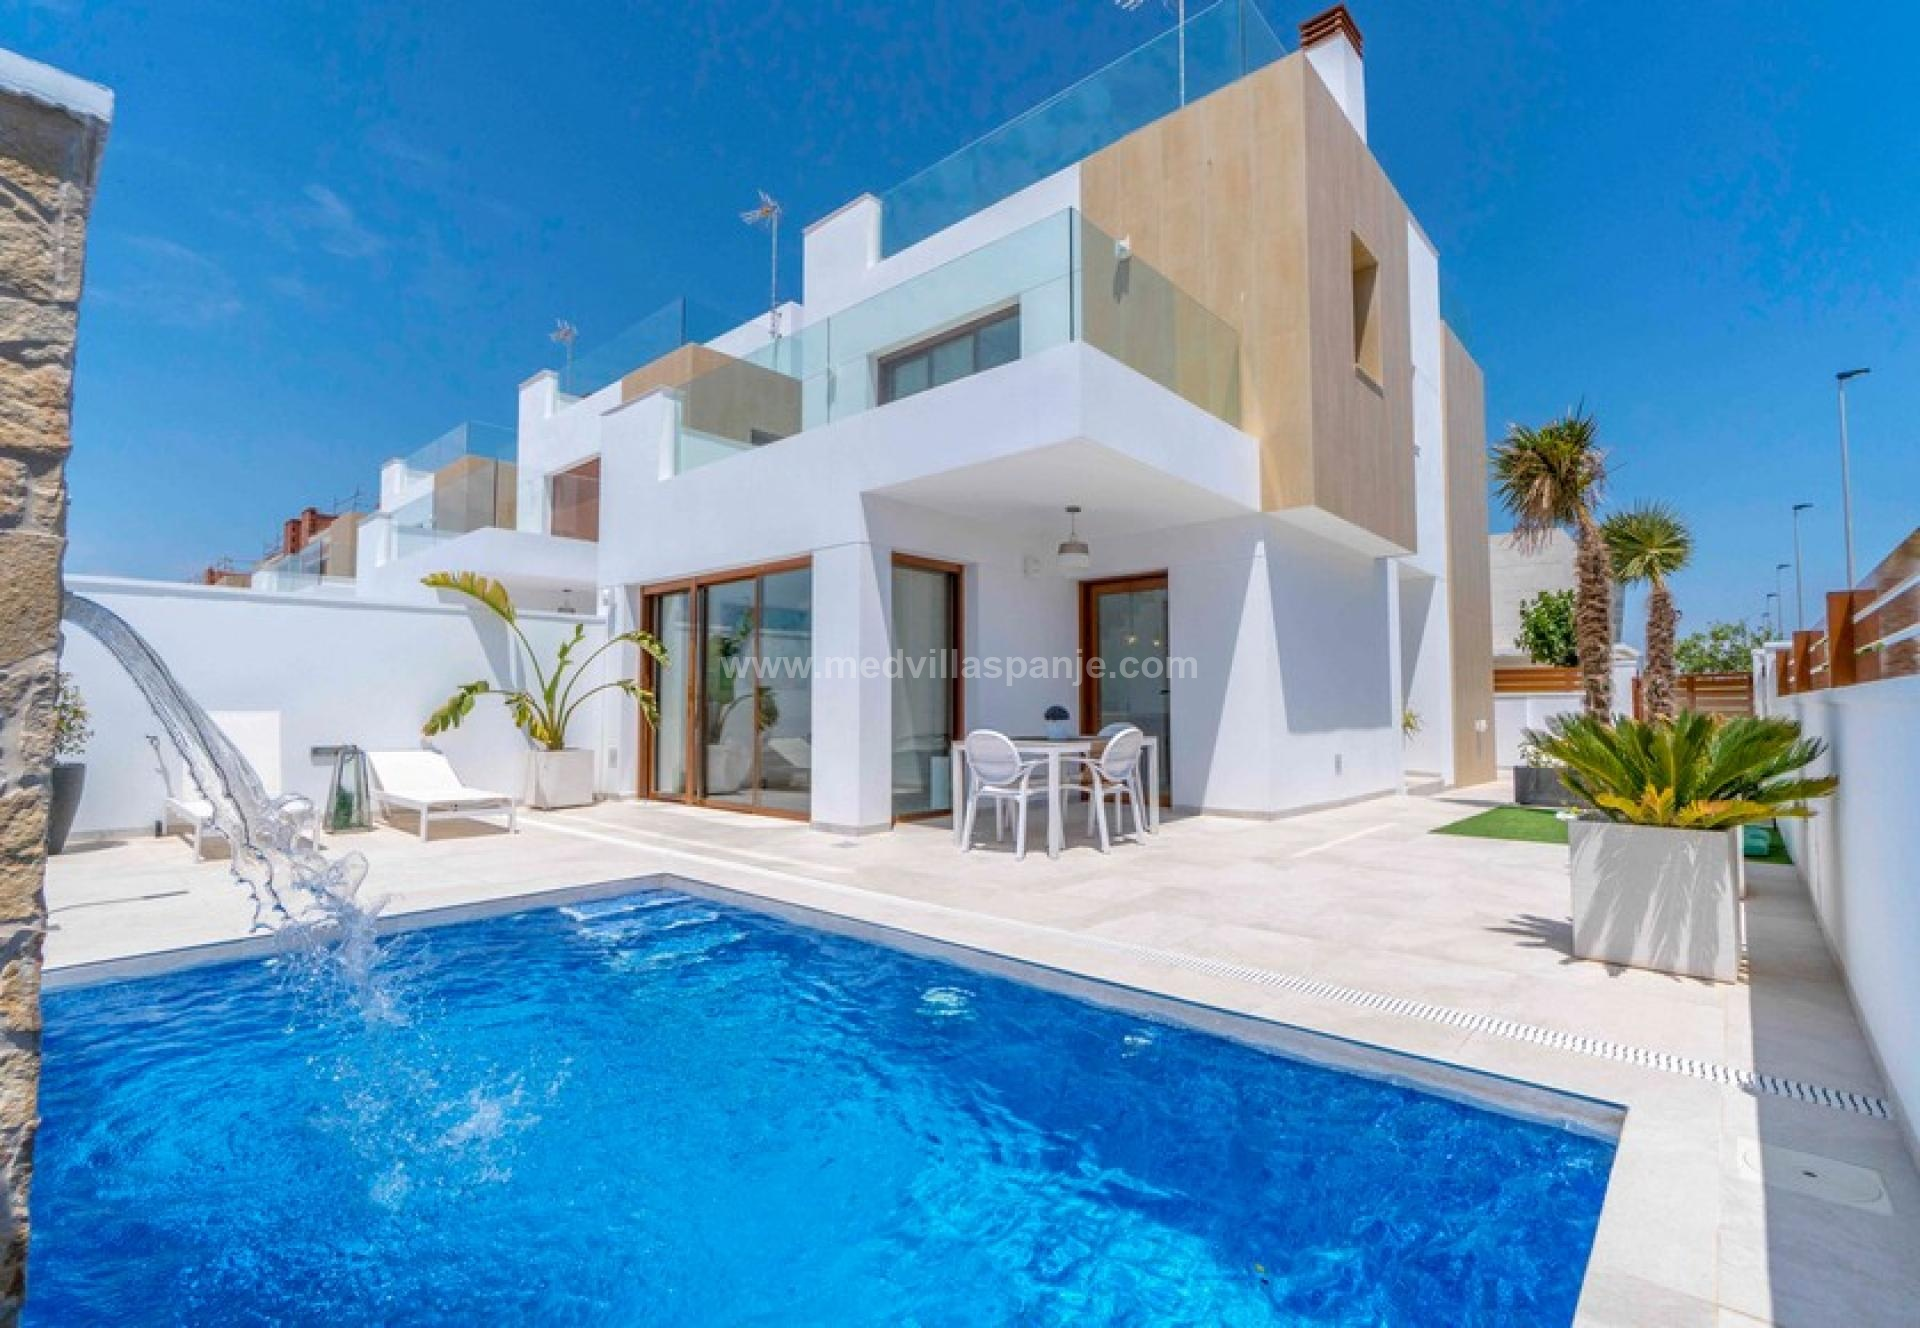 3 bedroom Villa in Torre de la Horadada - New build in Medvilla Spanje